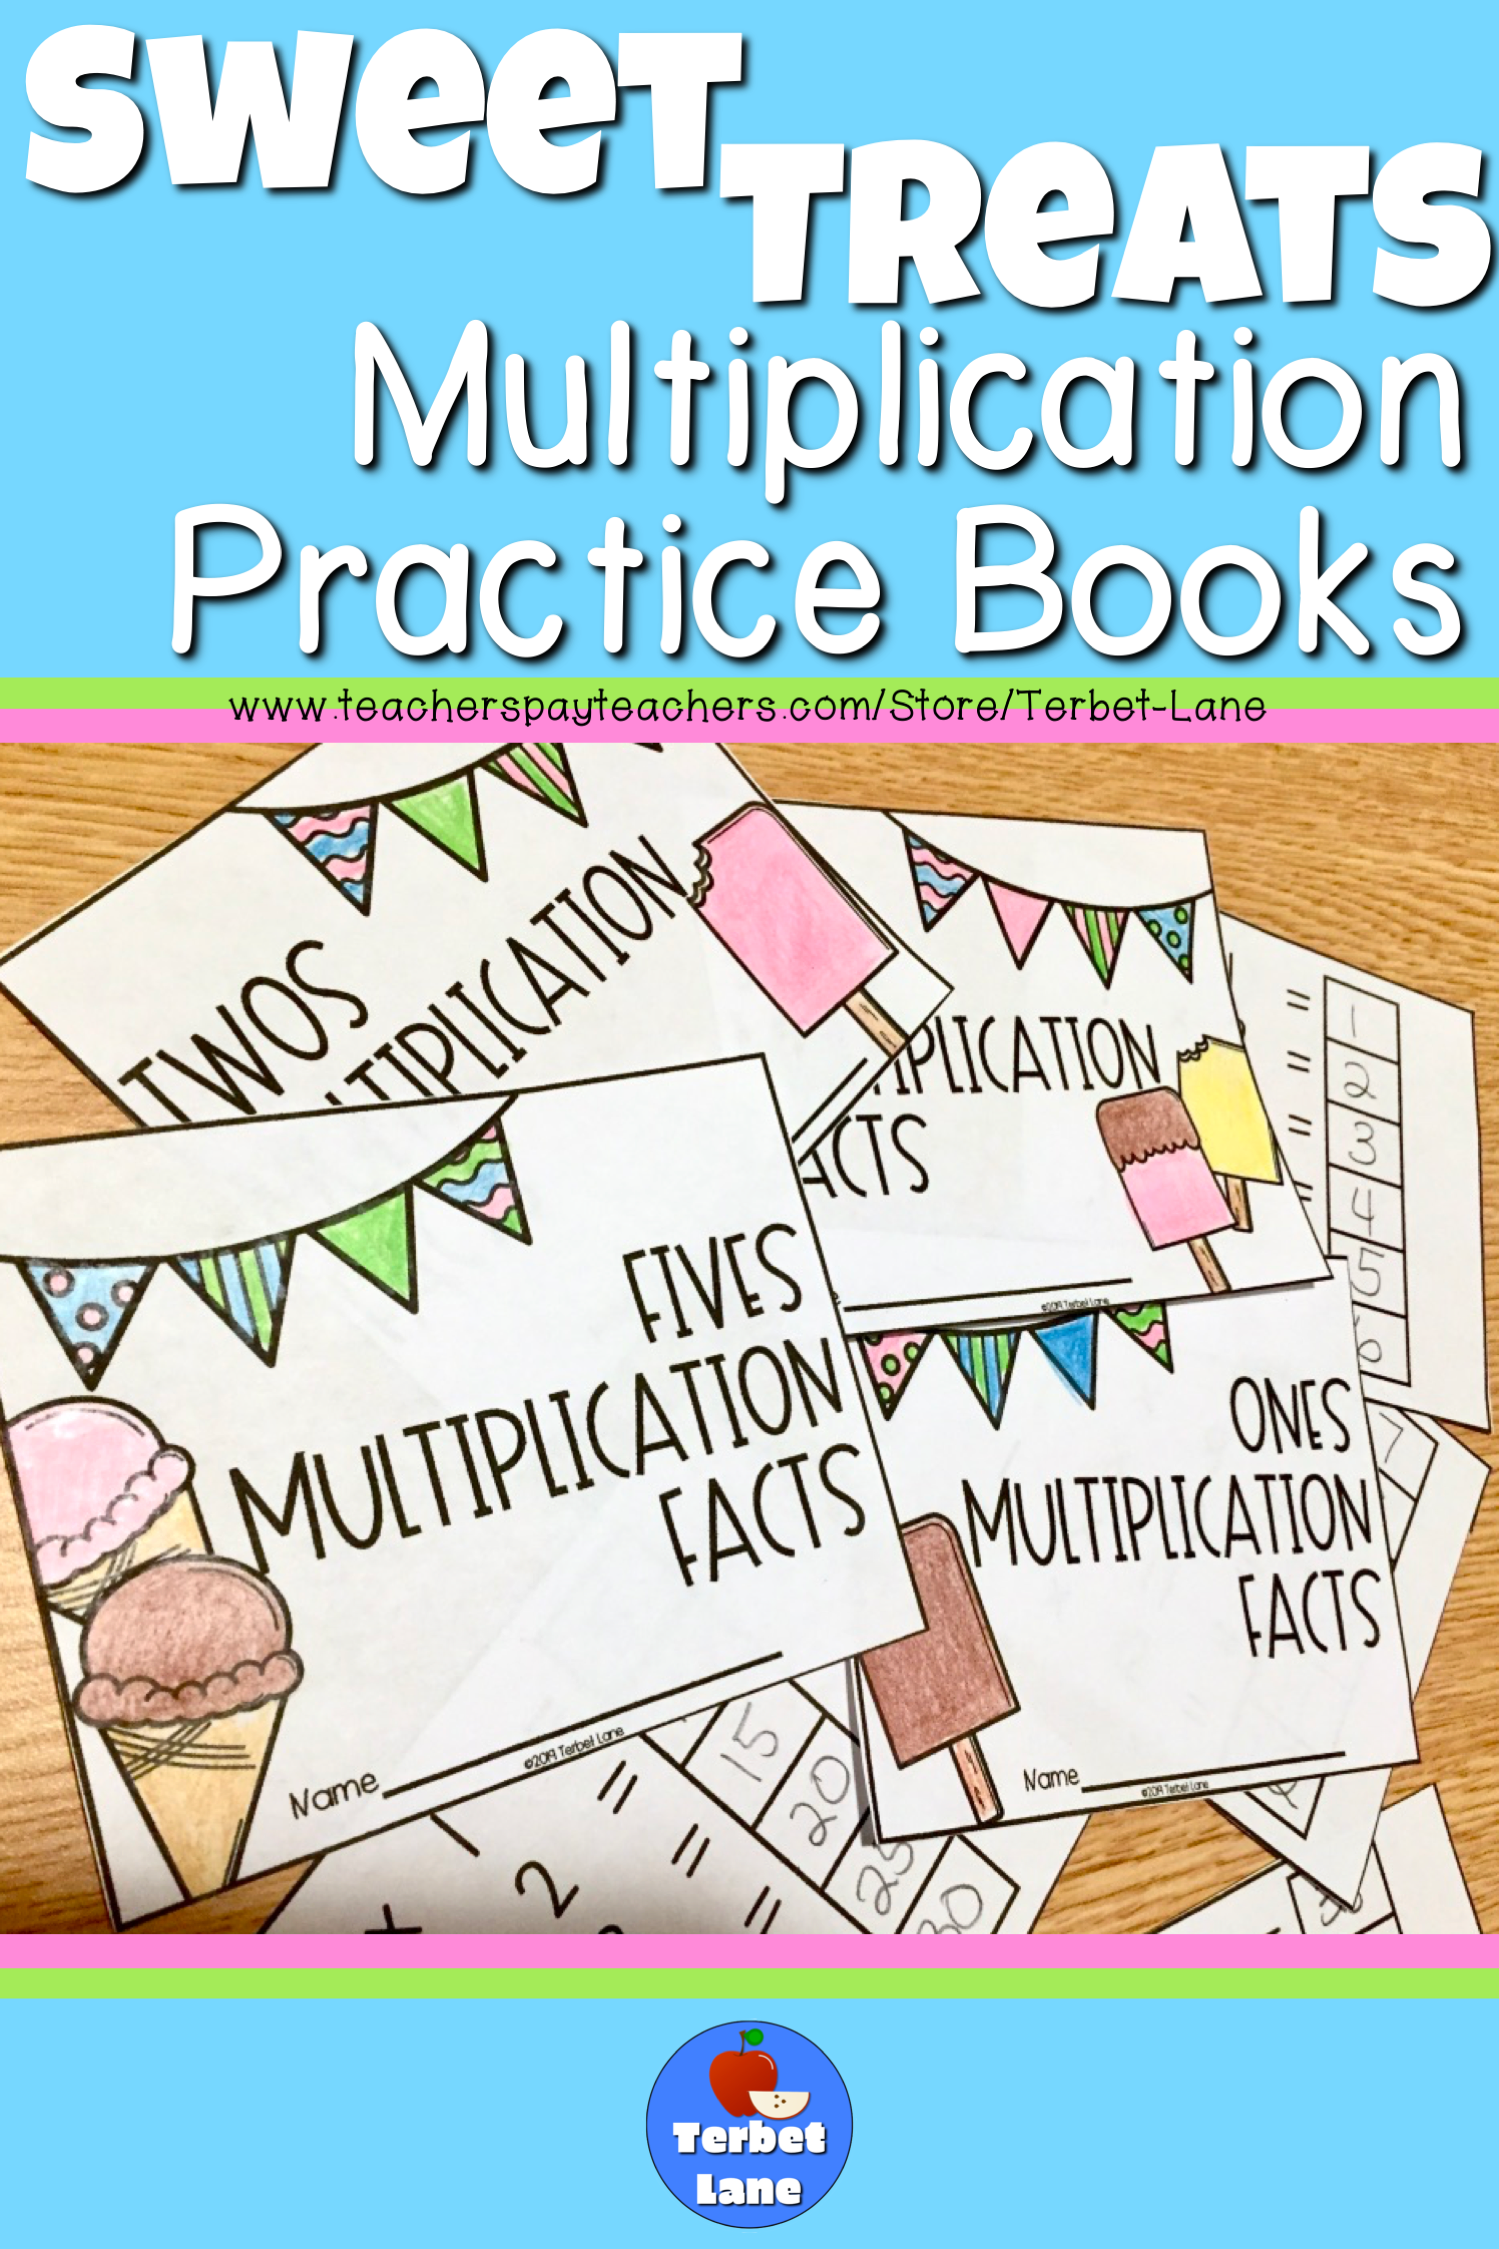 Sweet Treats Multiplication Facts